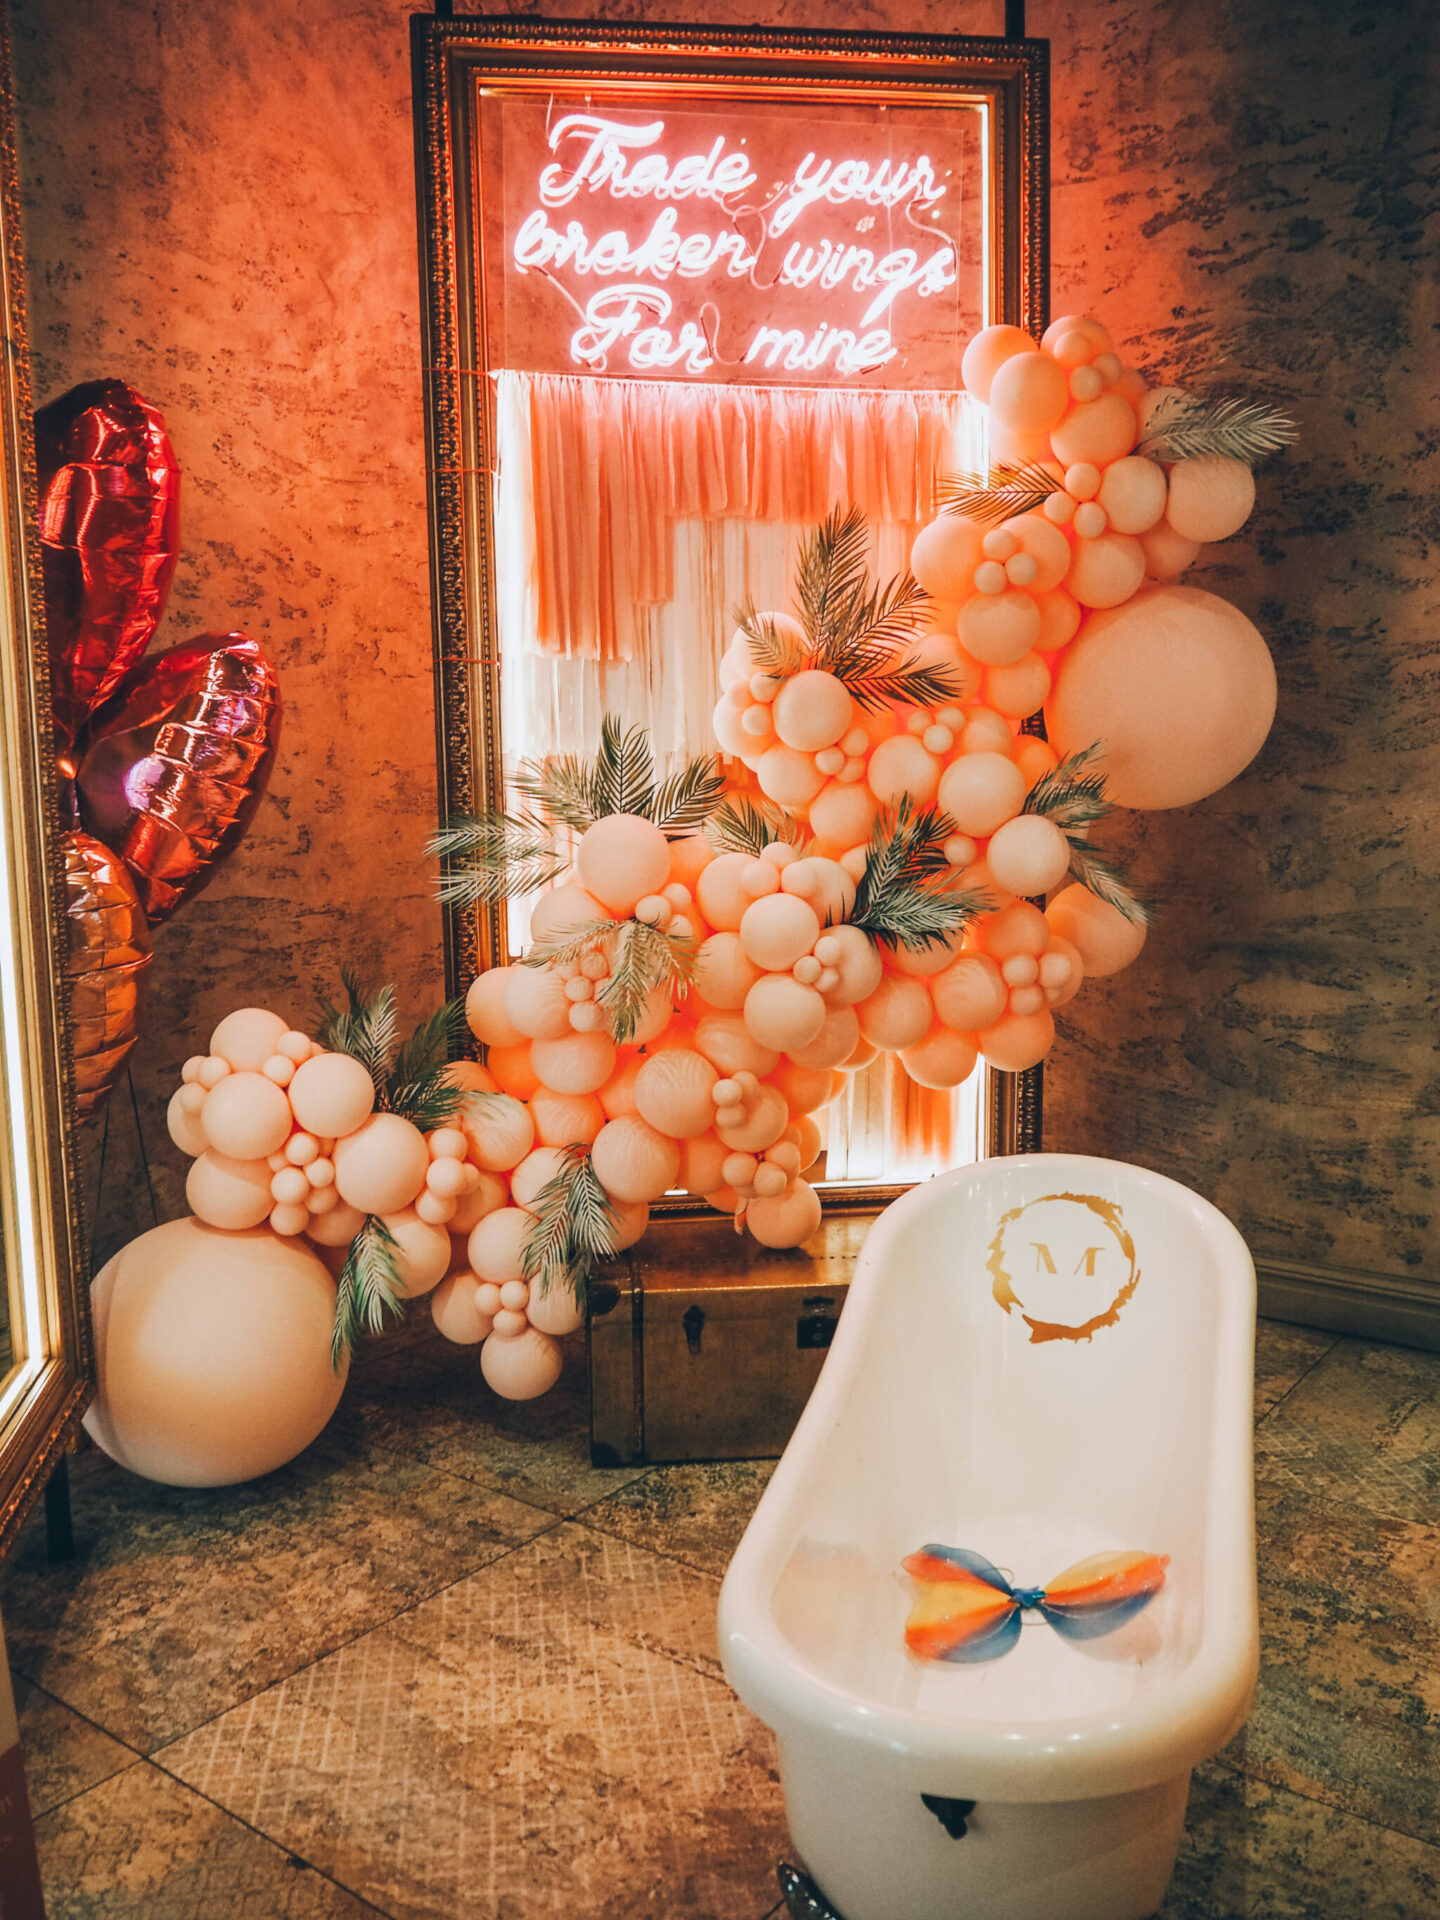 Menagerie roll top bath tub, neon sign saying 'Trade your broken wings for mine' and pale pink balloon arch